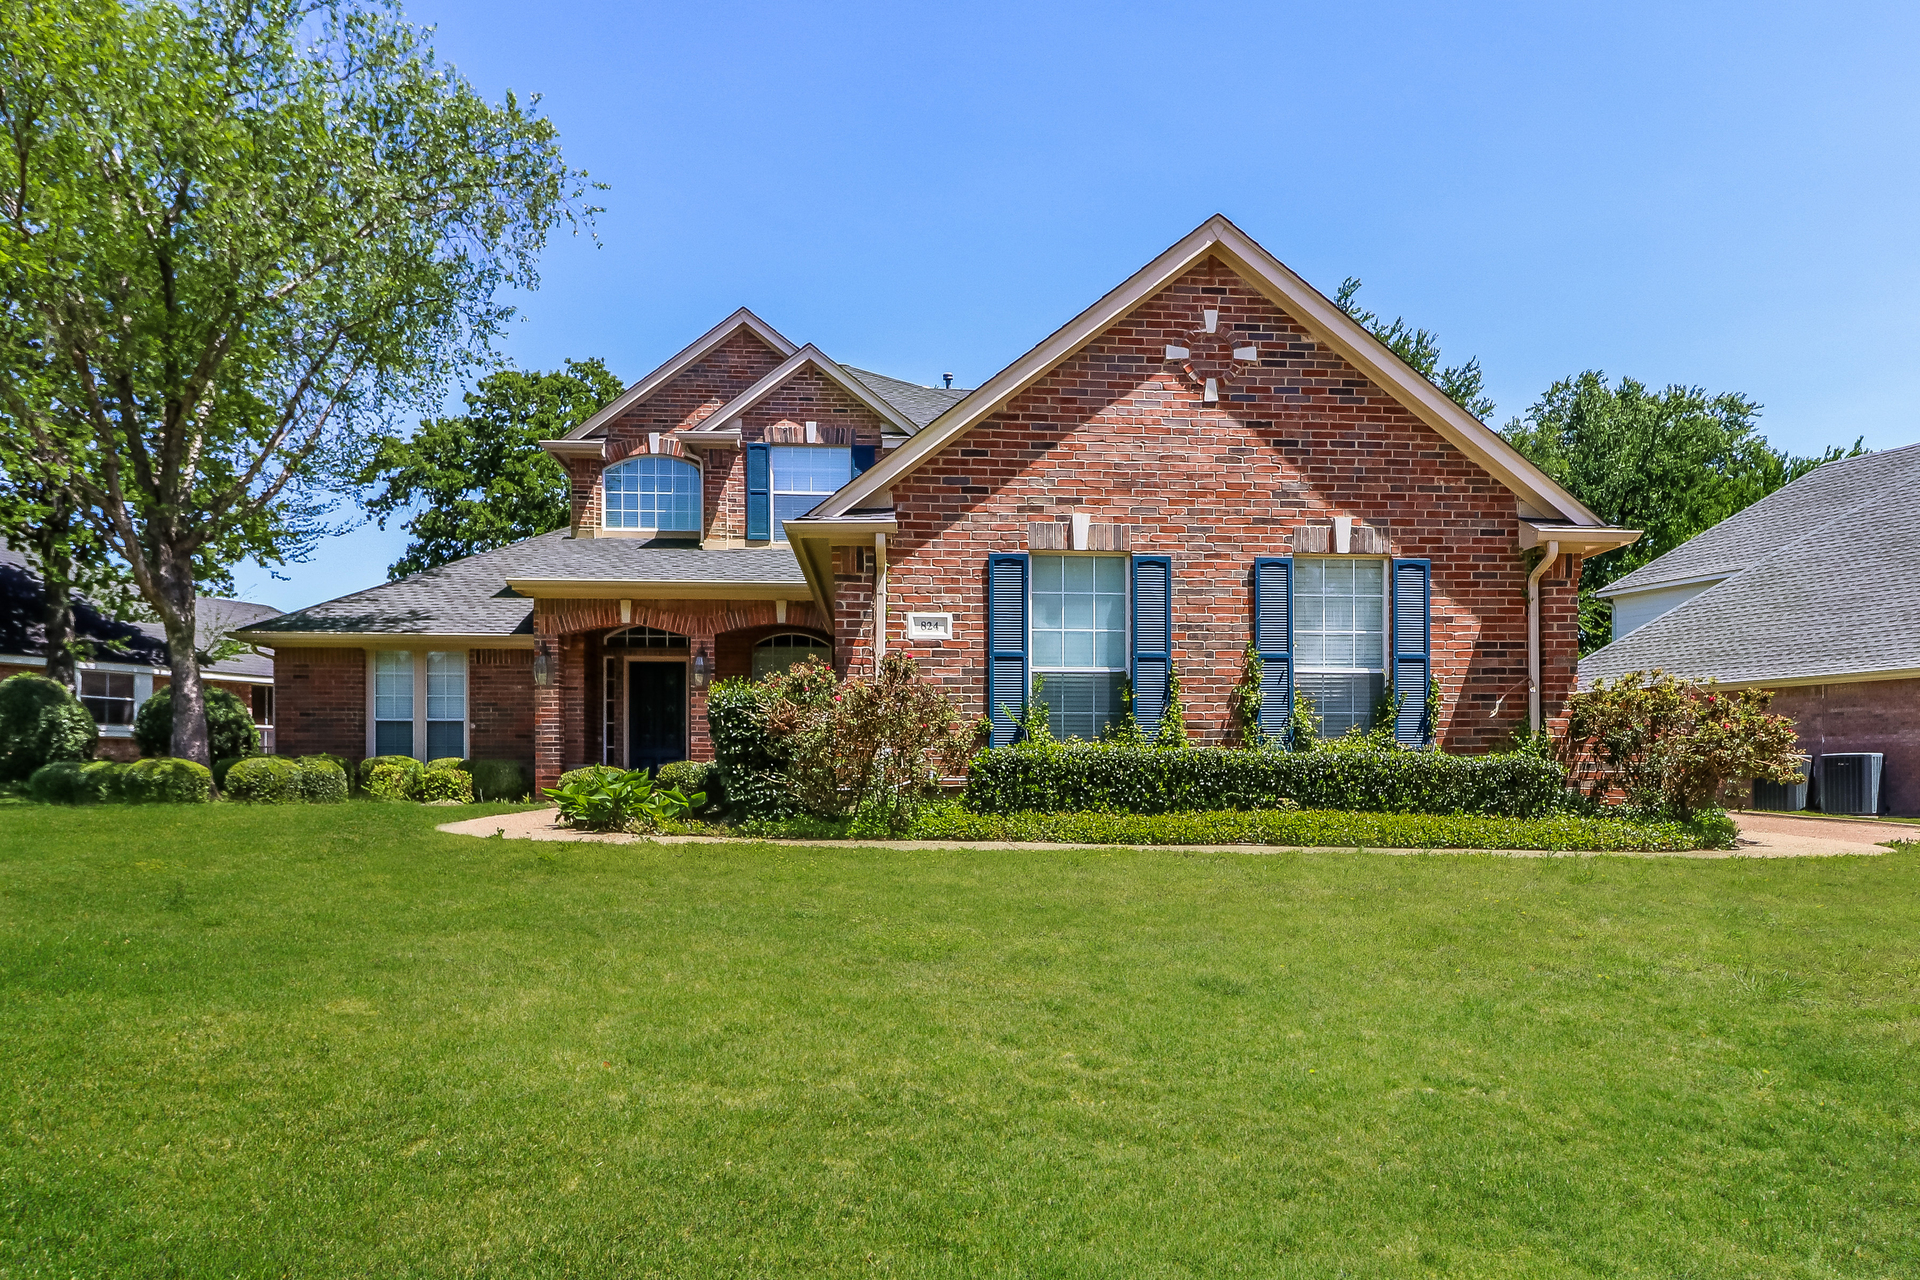 Photo of 824 Doral Drive, Mansfield, TX 76063